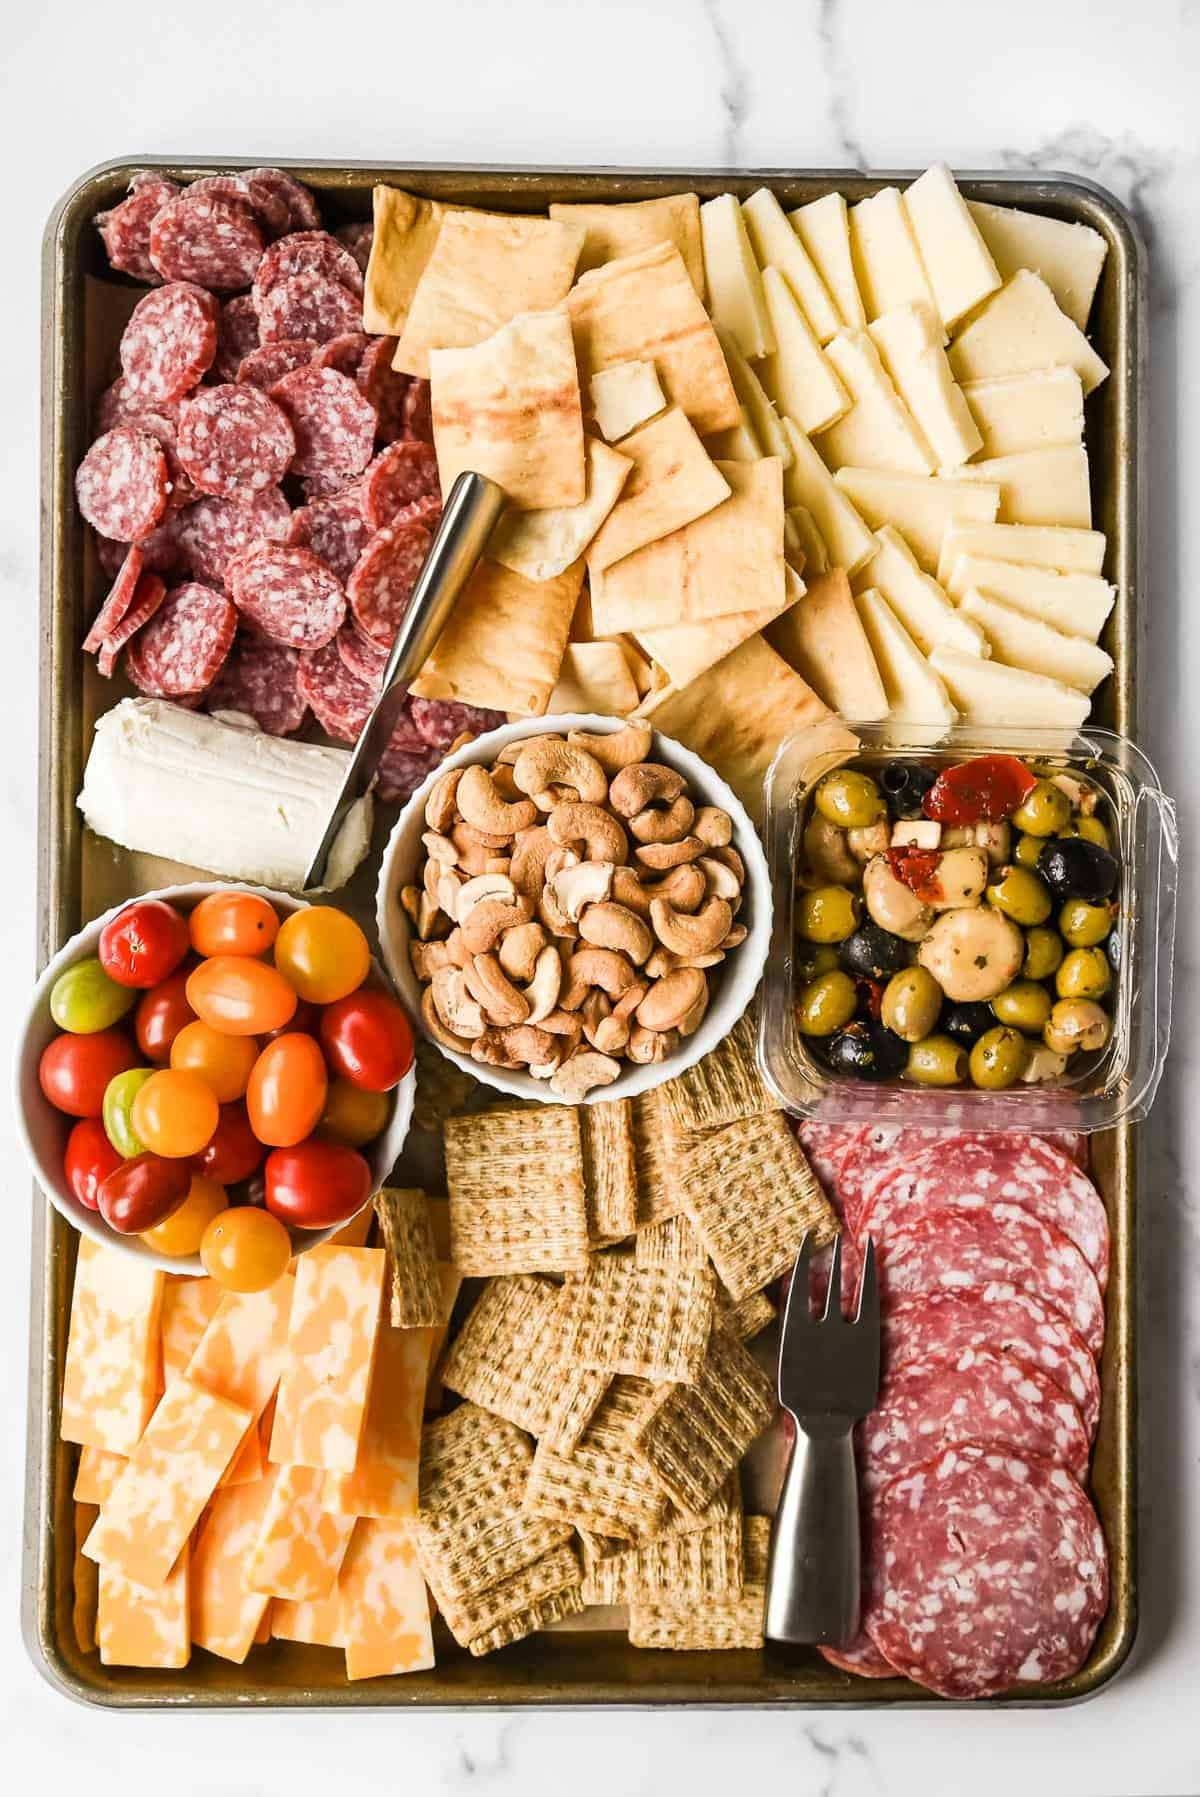 charcuterie board with items from aldi for under $25